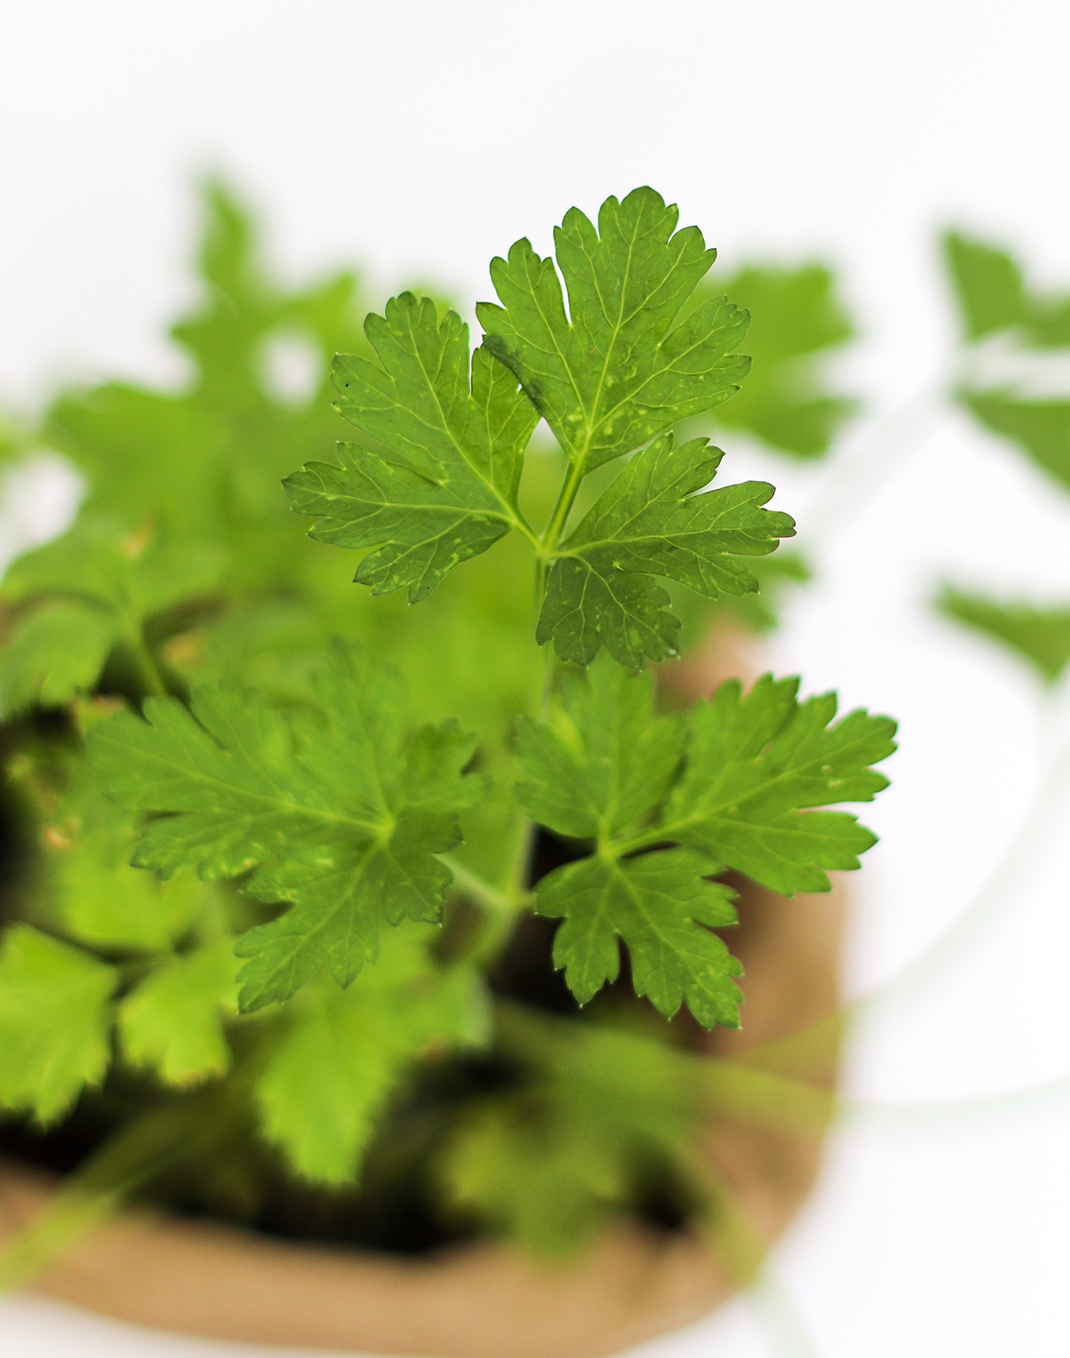 Italian Flat Parsley Petroselinum crispum